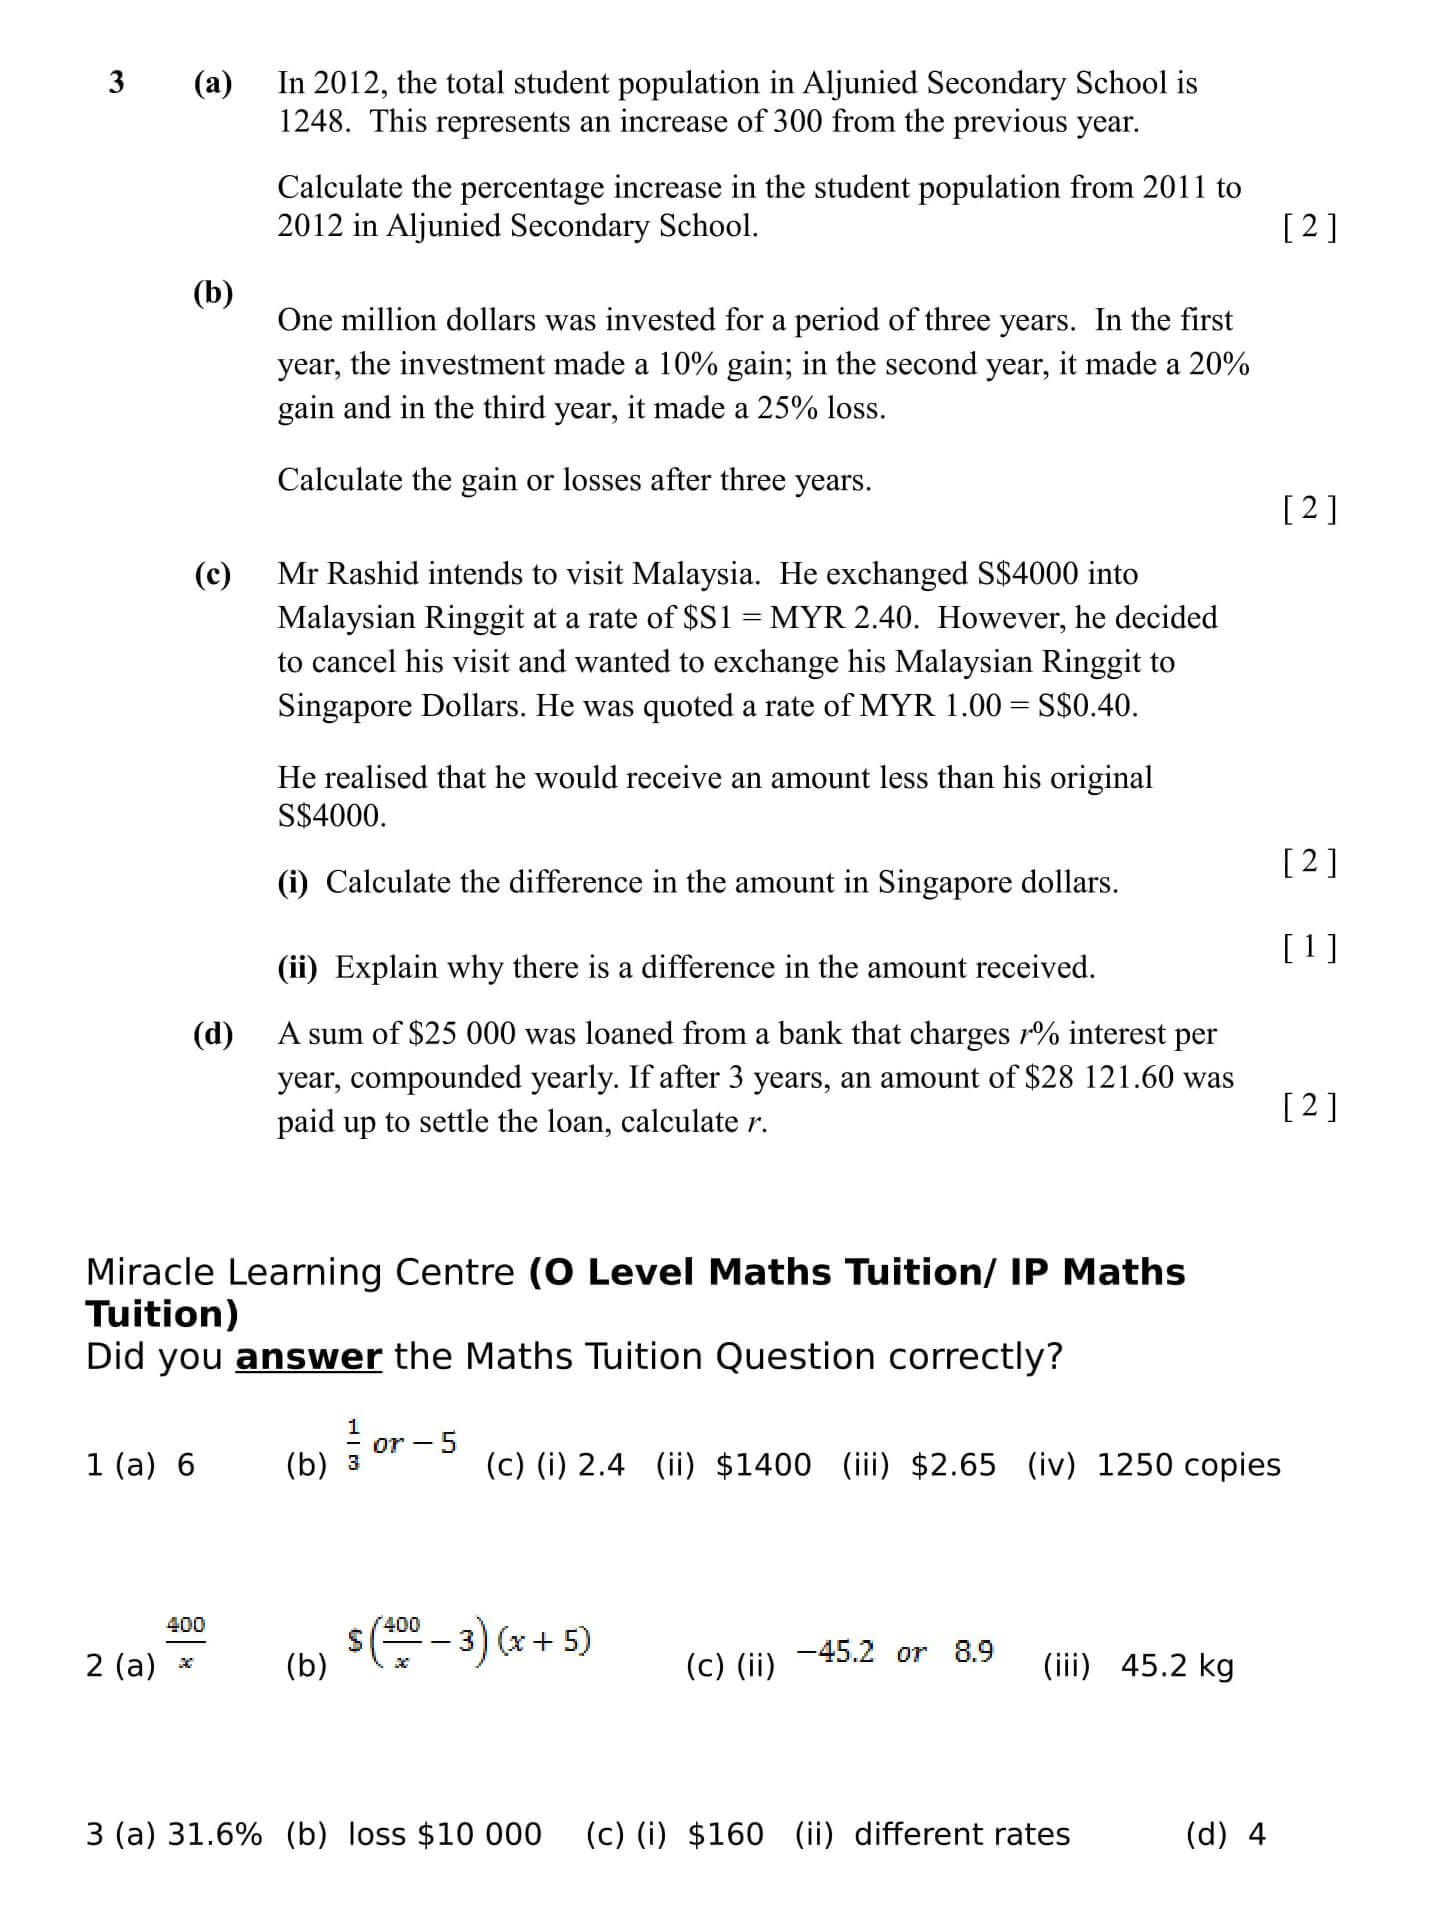 Are you able to answer this Maths Tuition Question?